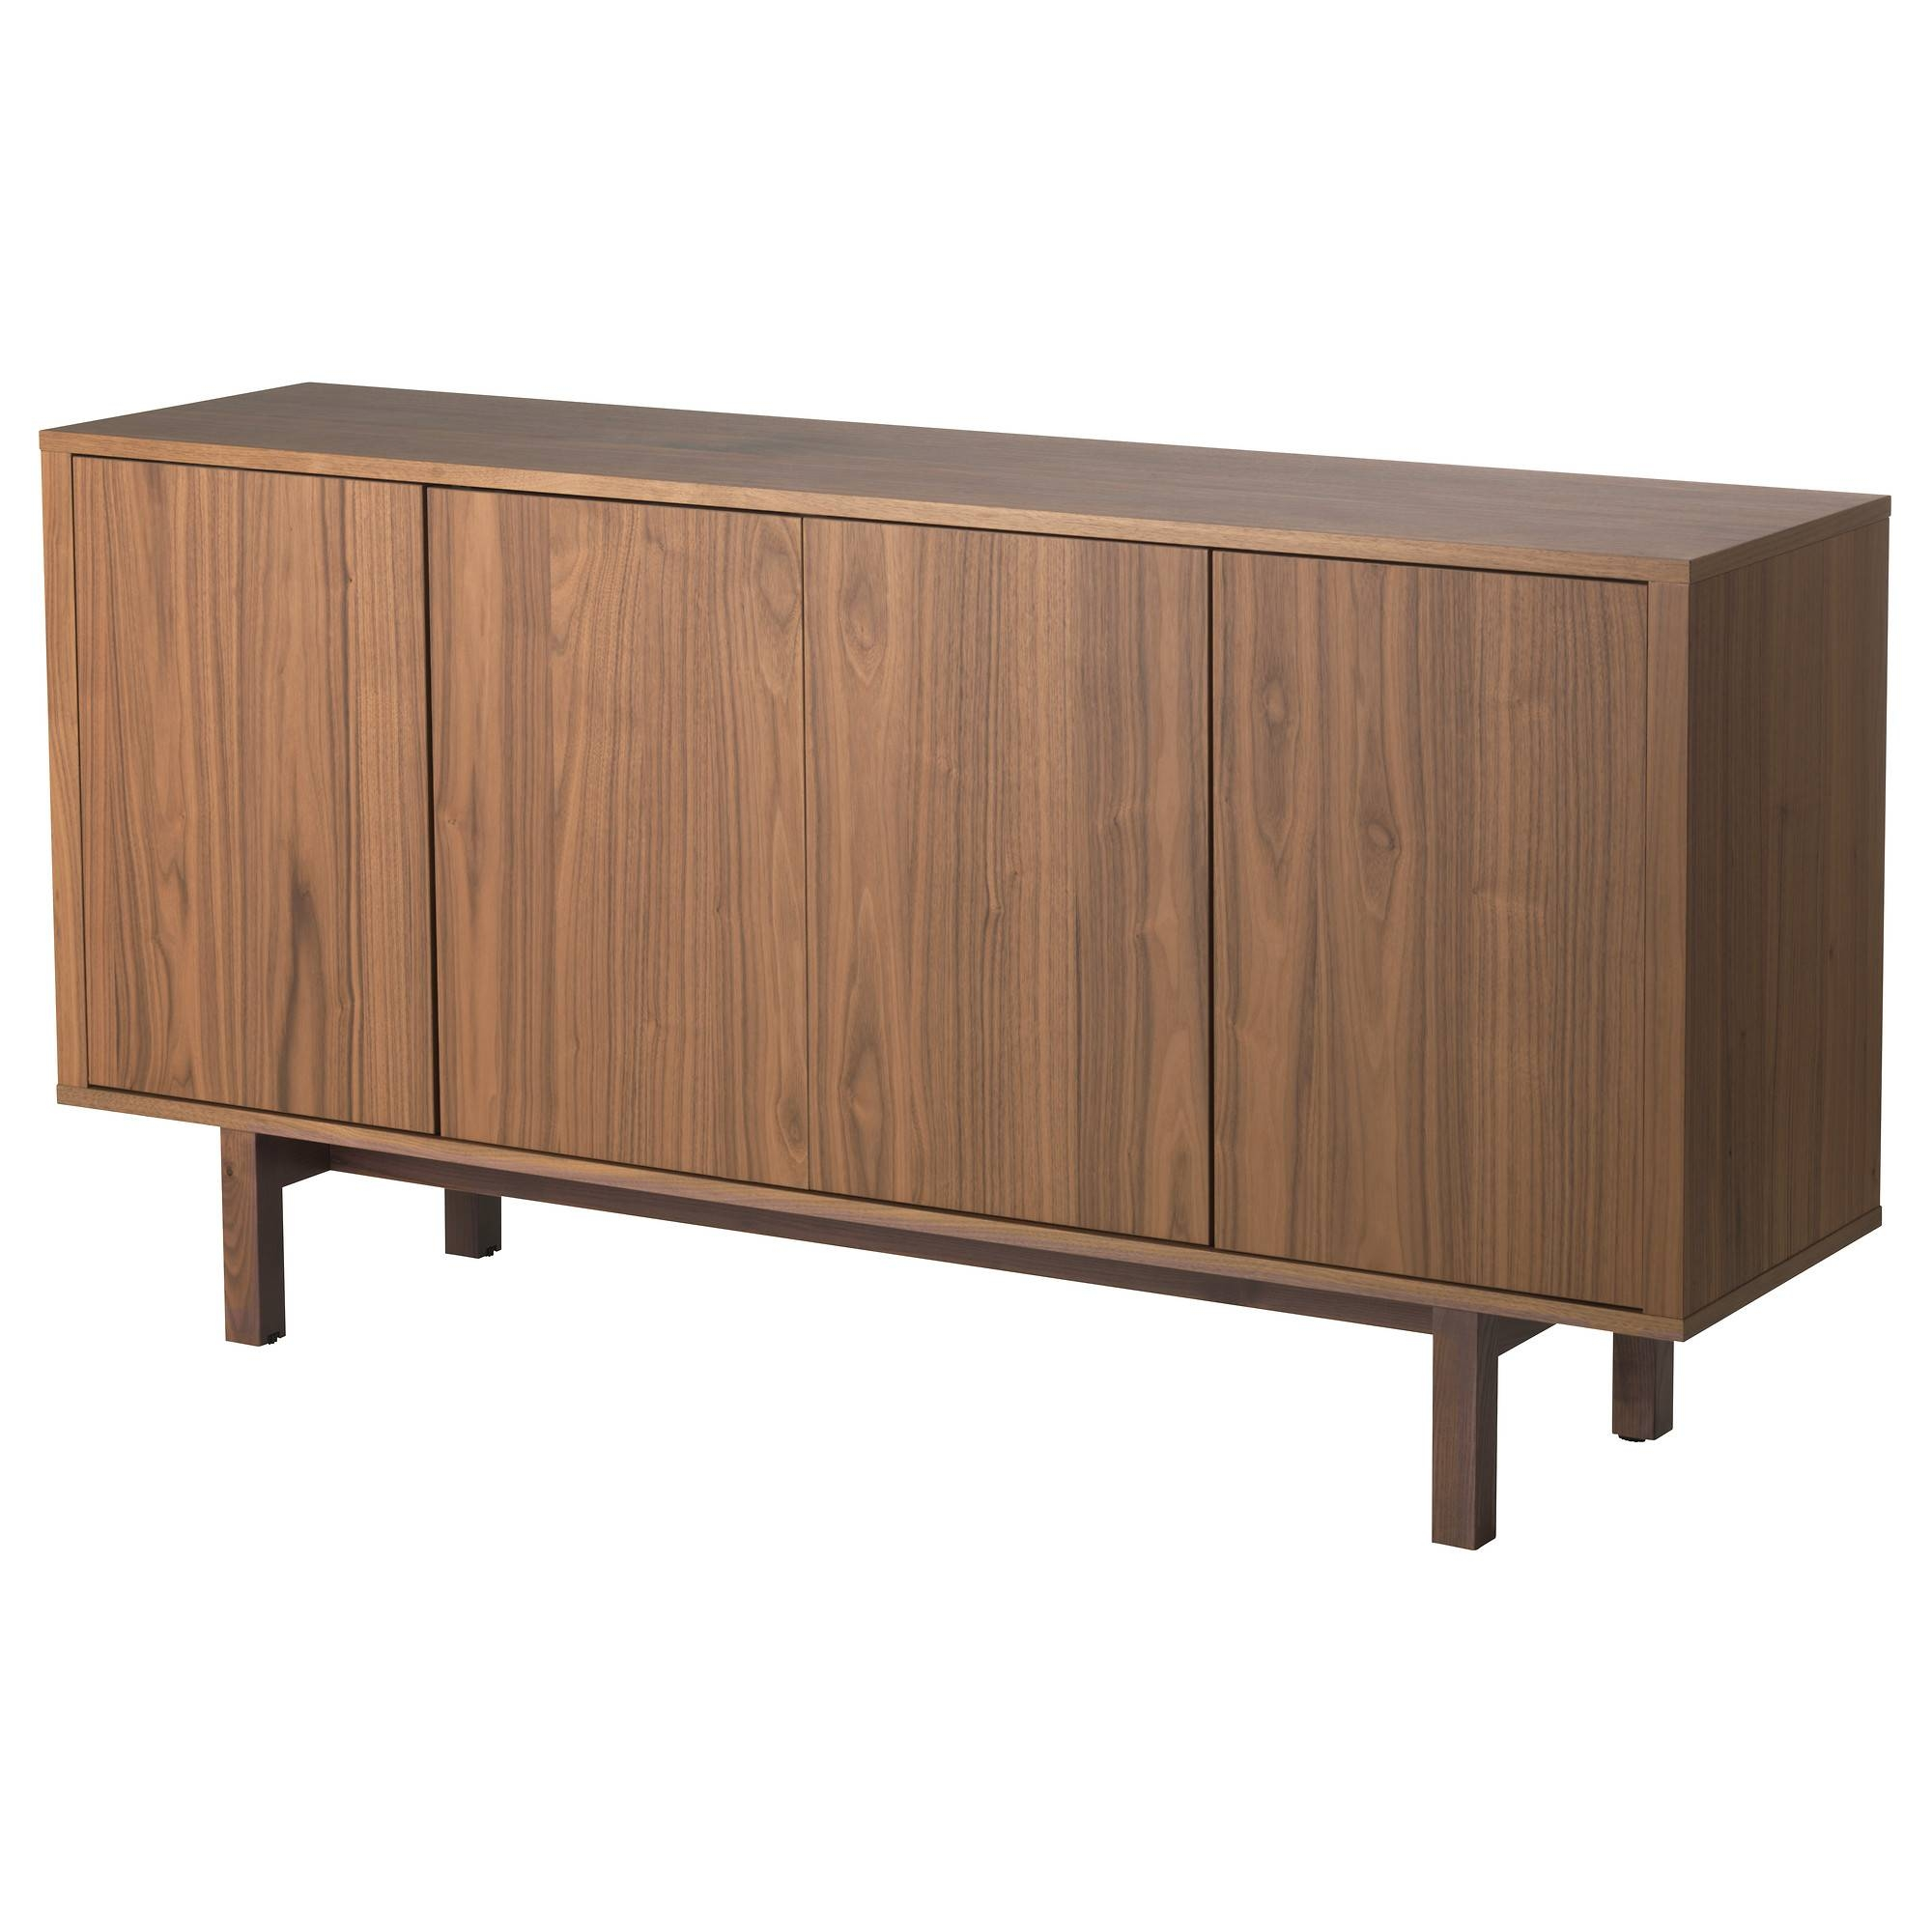 Buffet Tables & Sideboards – Ikea In Sideboard Buffet Tables (View 3 of 15)